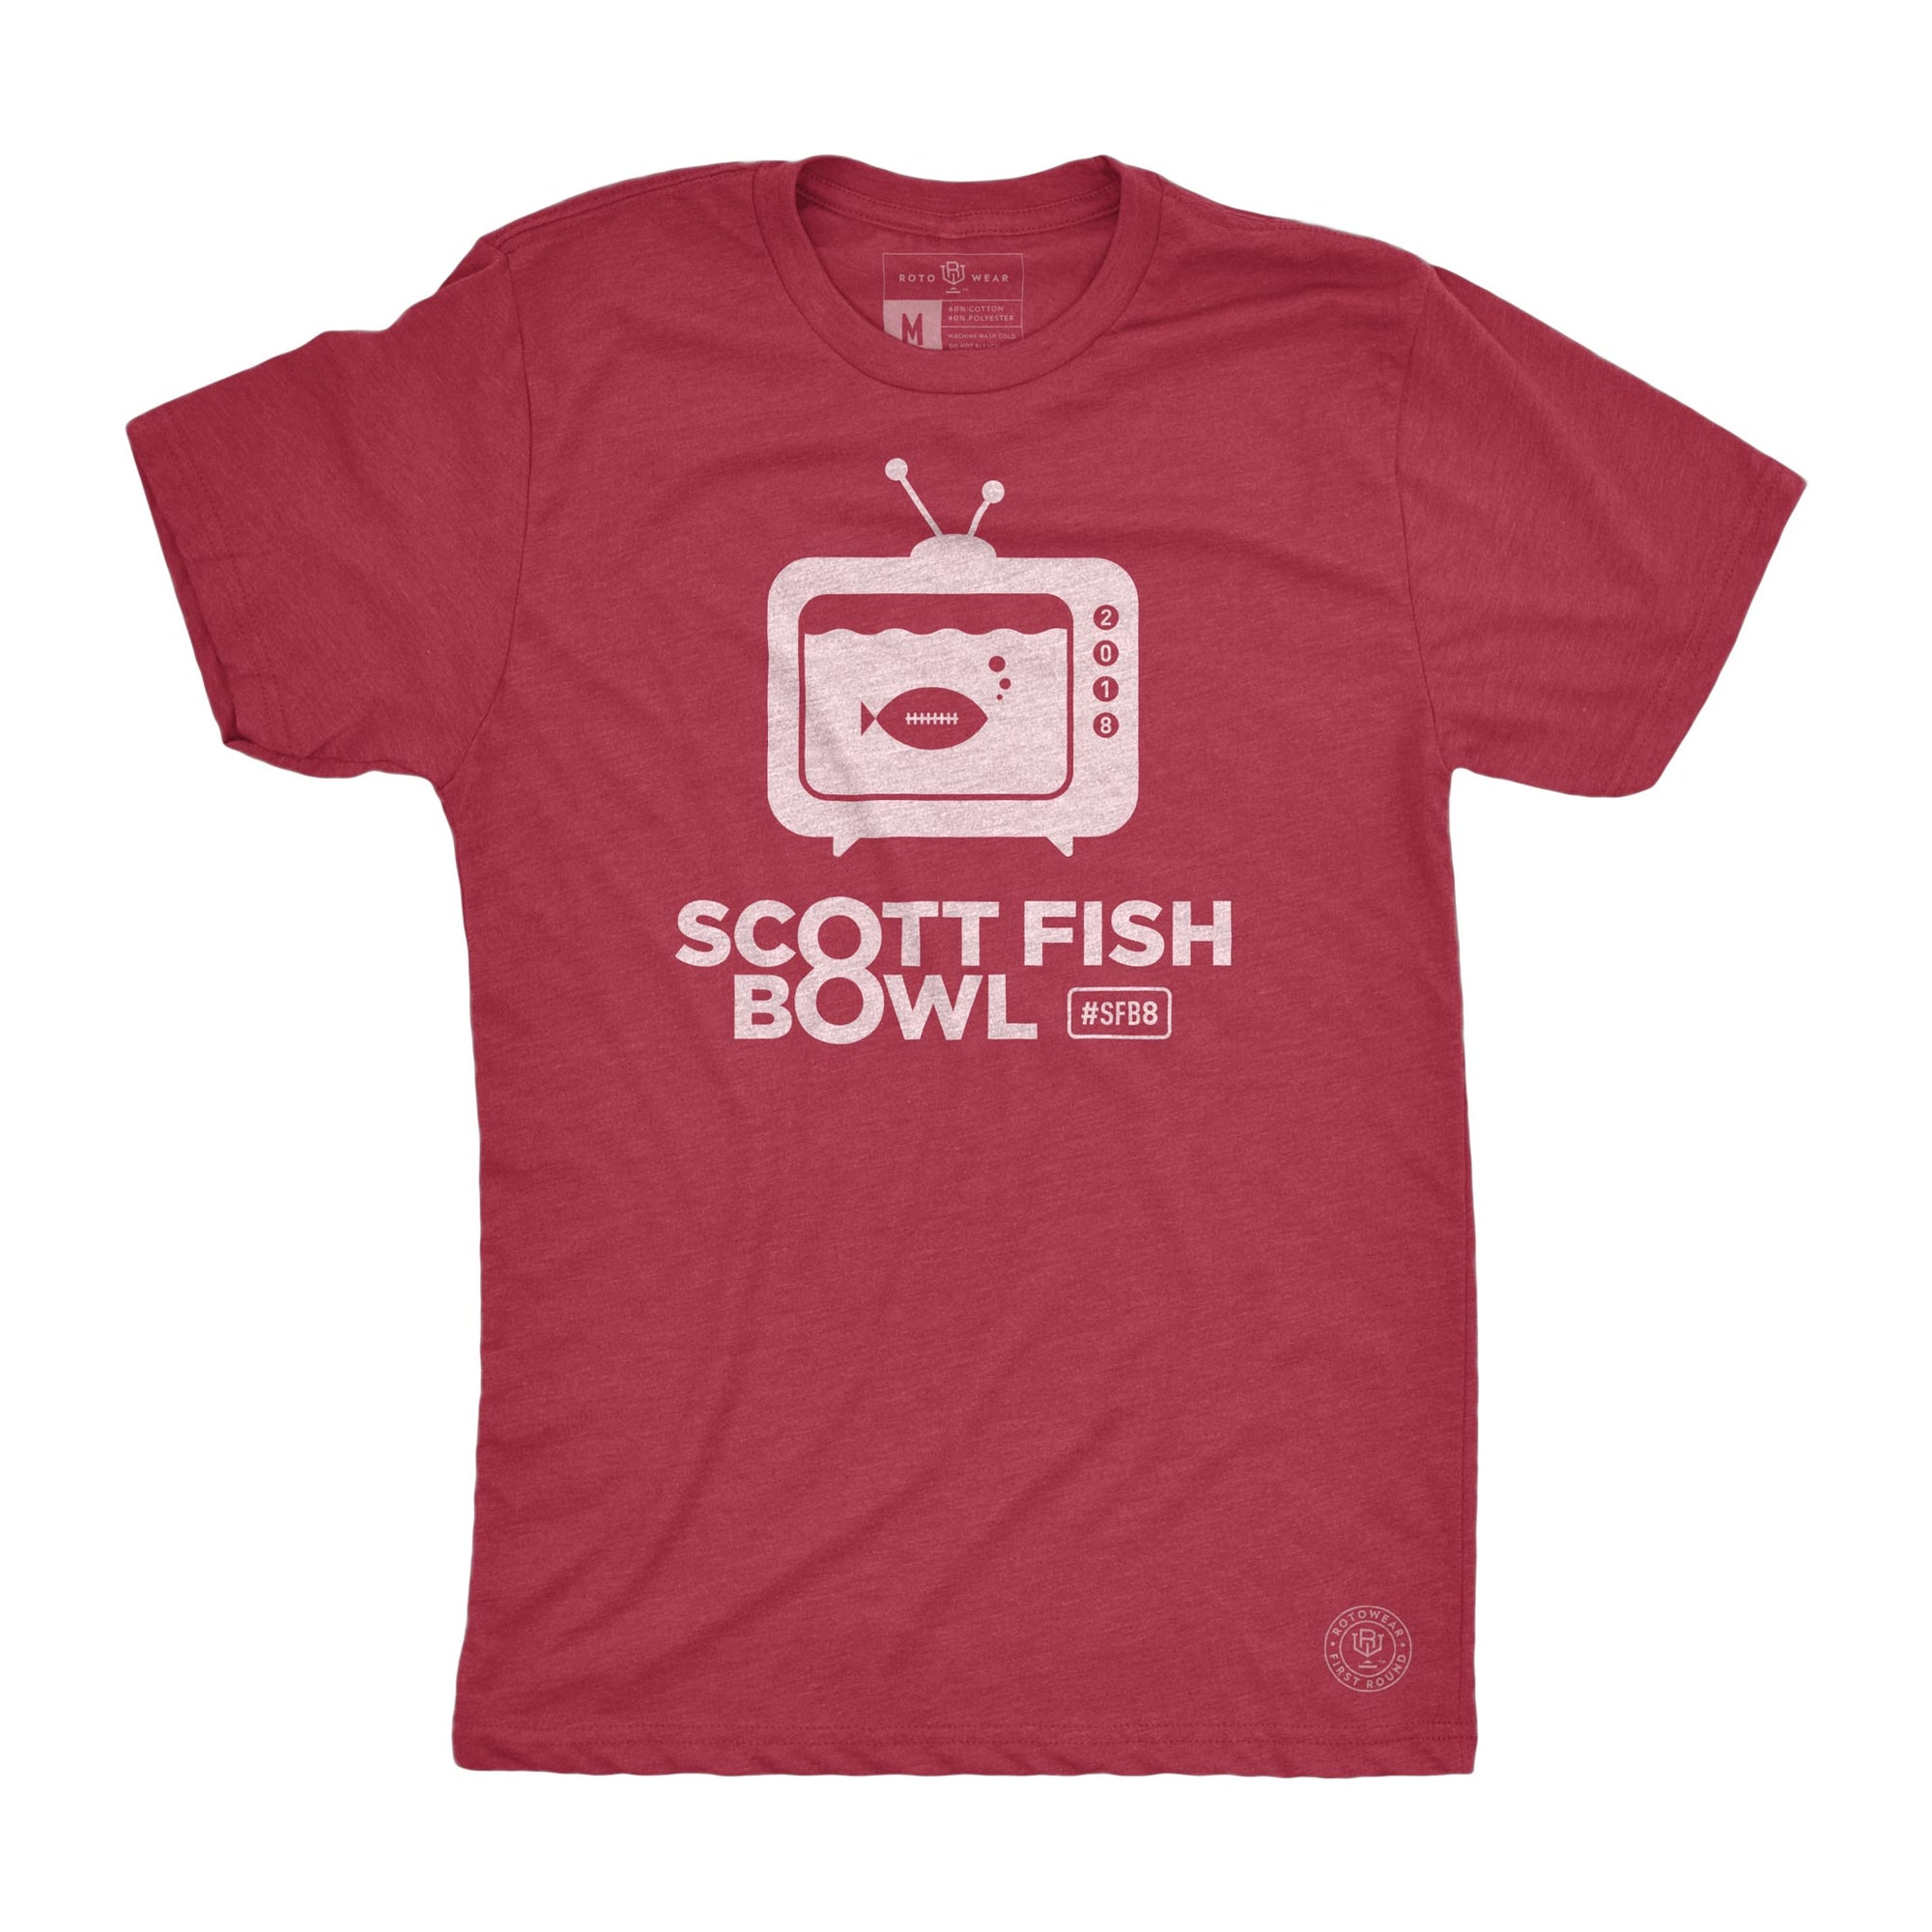 RotoWear's Scott Fish Bowl men's t-shirt for fantasy football managers is the official shirt of SFB8